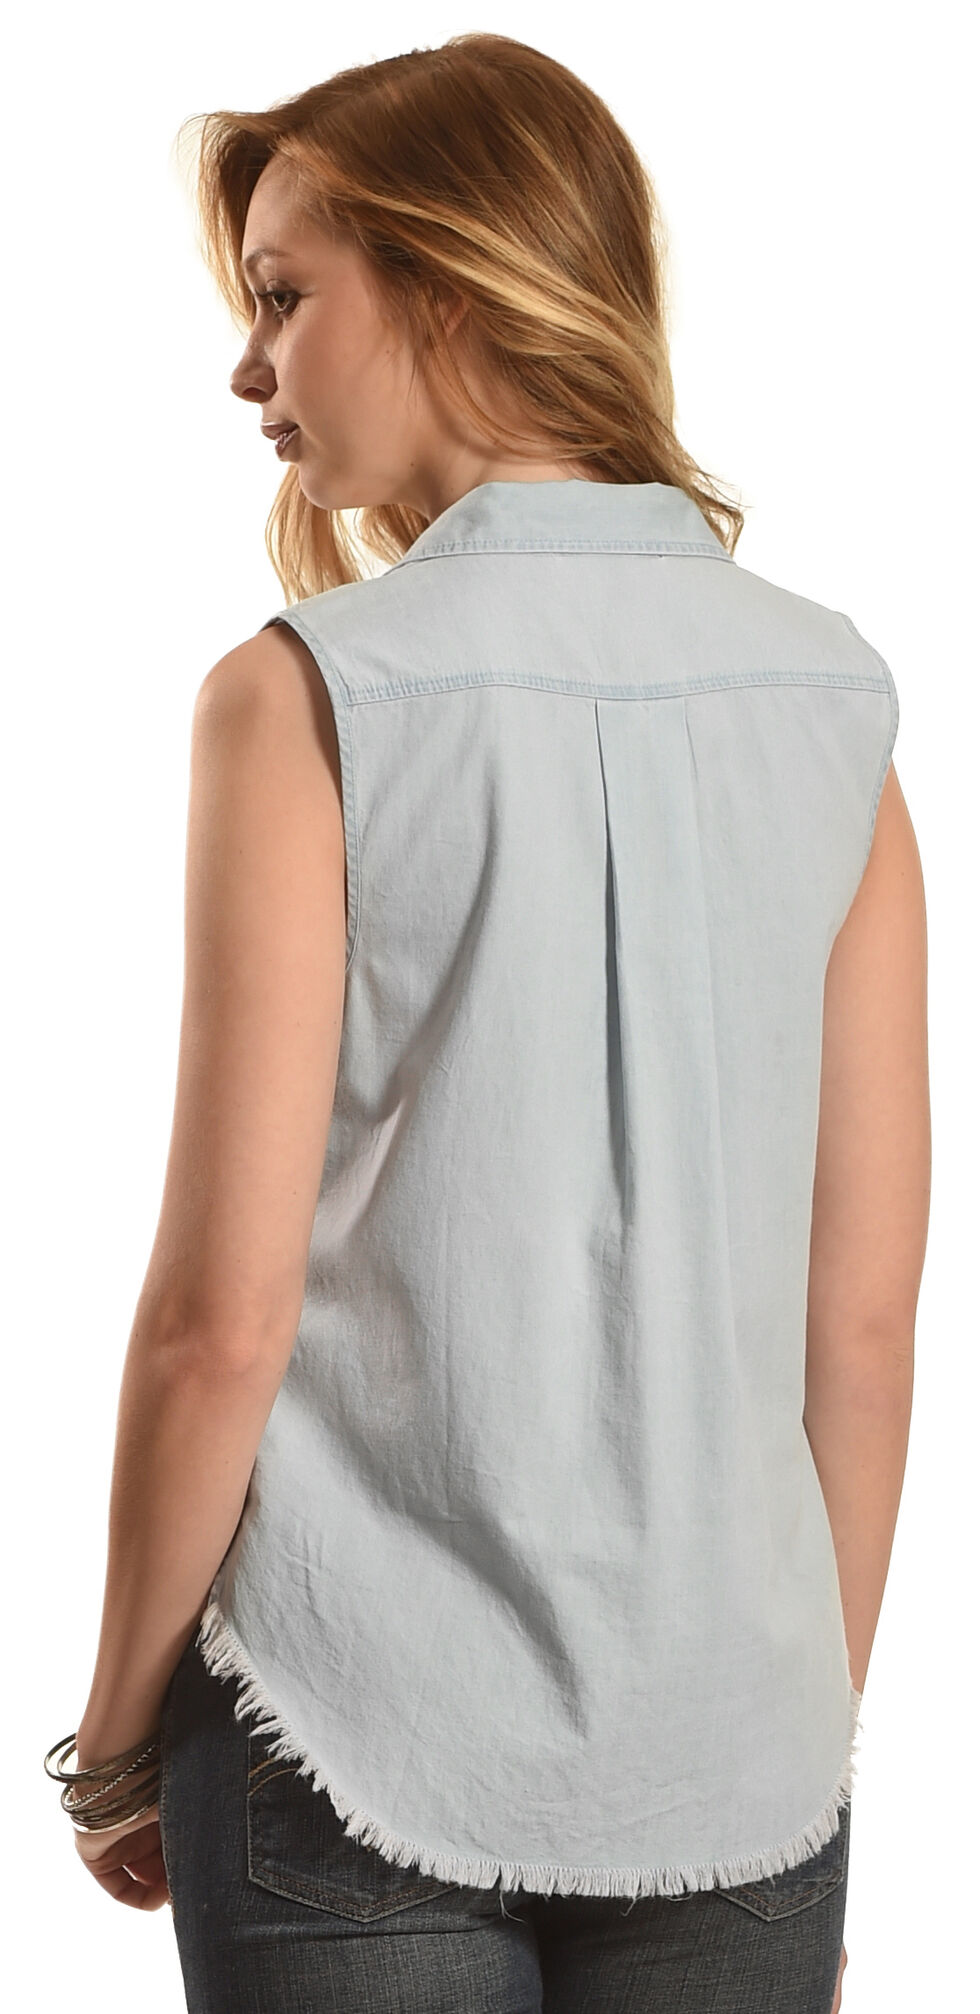 Derek Heart Women's Sleeveless Denim Button Down Shirt, Light Blue, hi-res